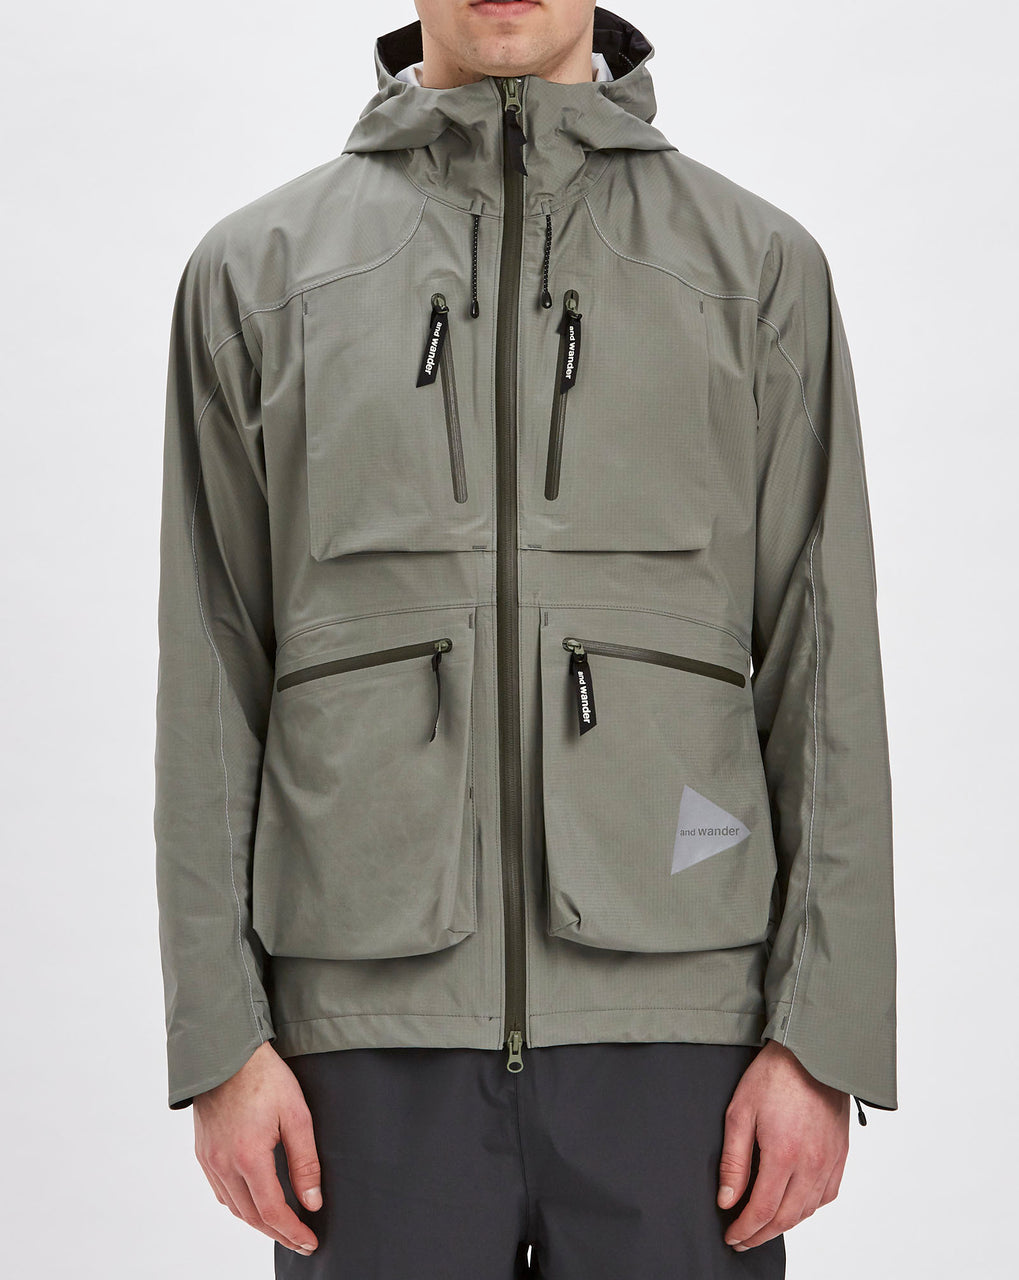 and Wander eVent Dropping Pocket Rain Jacket (Light Grey)